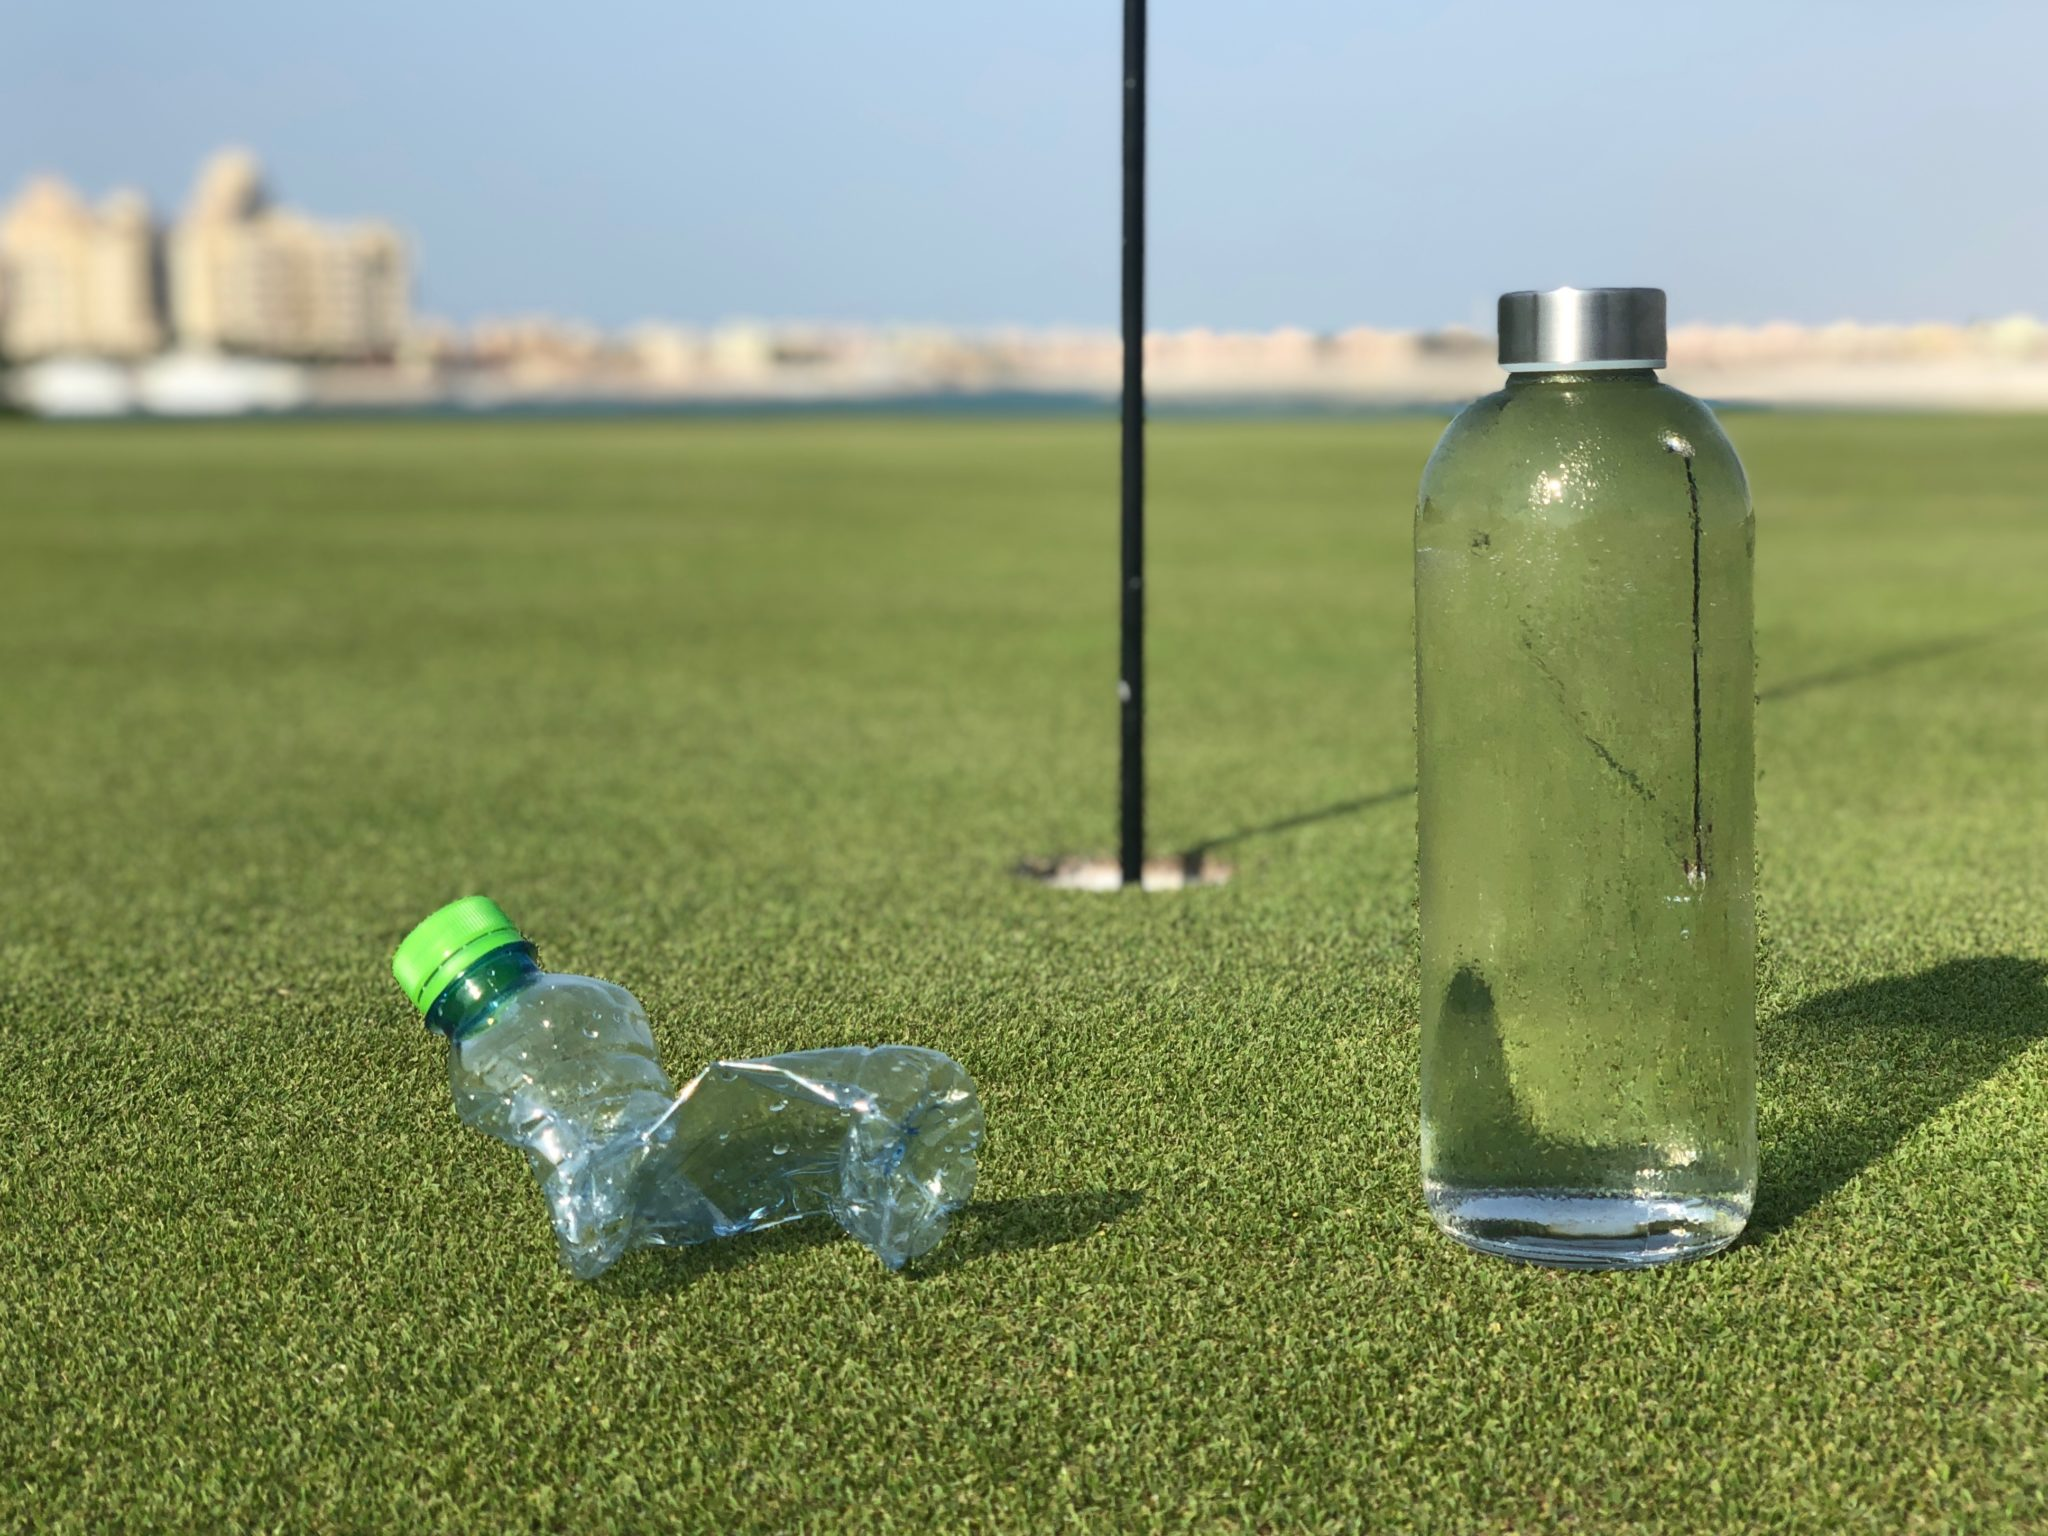 Al Hamra Golf Club becomes the first club in the Middle East to go Plastic Free